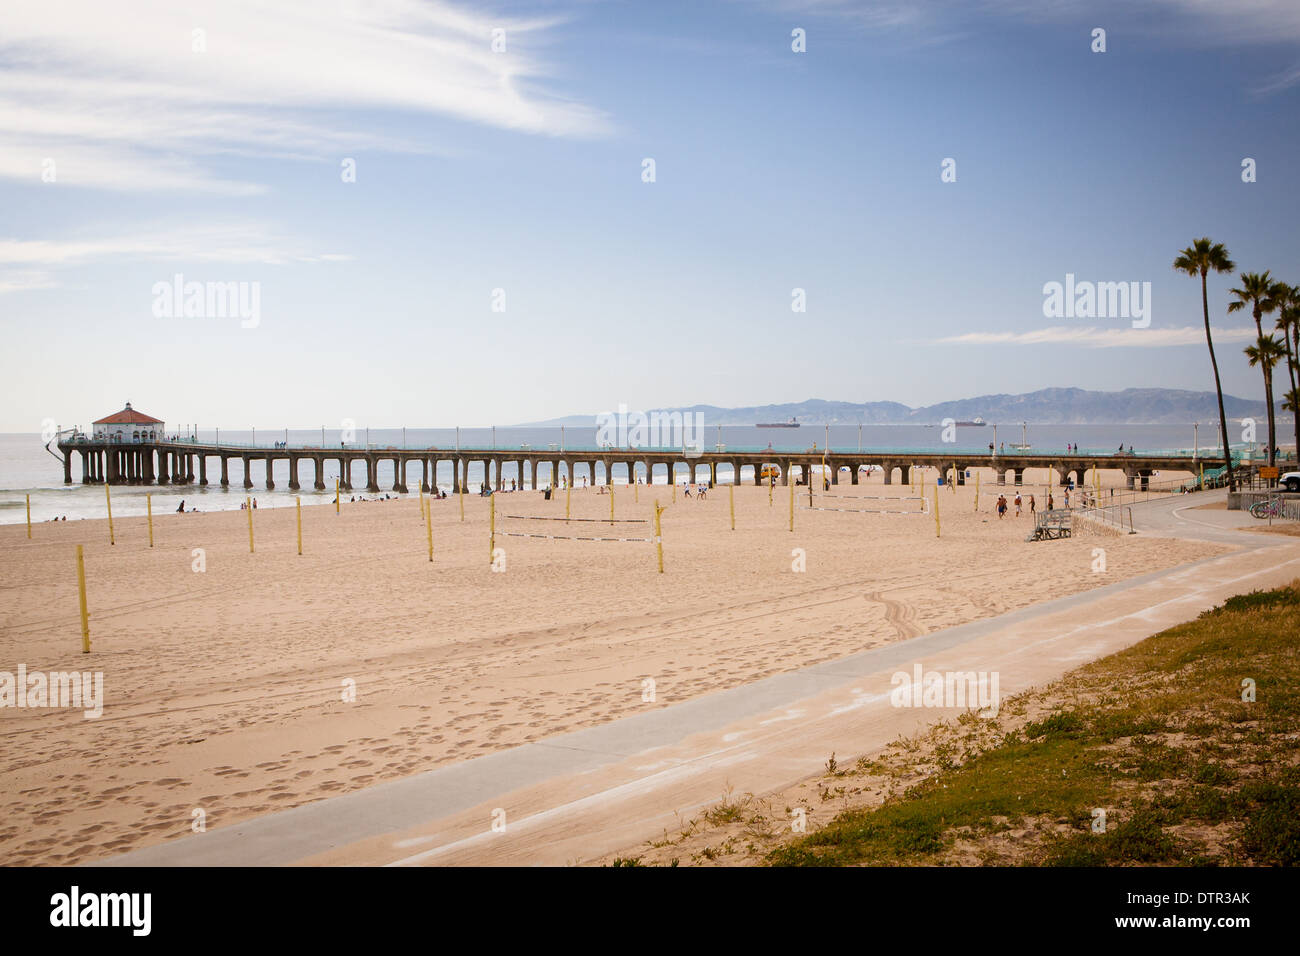 Manhattan Beach and pier on a warm sunny day in Los Angeles, California, USA - Stock Image